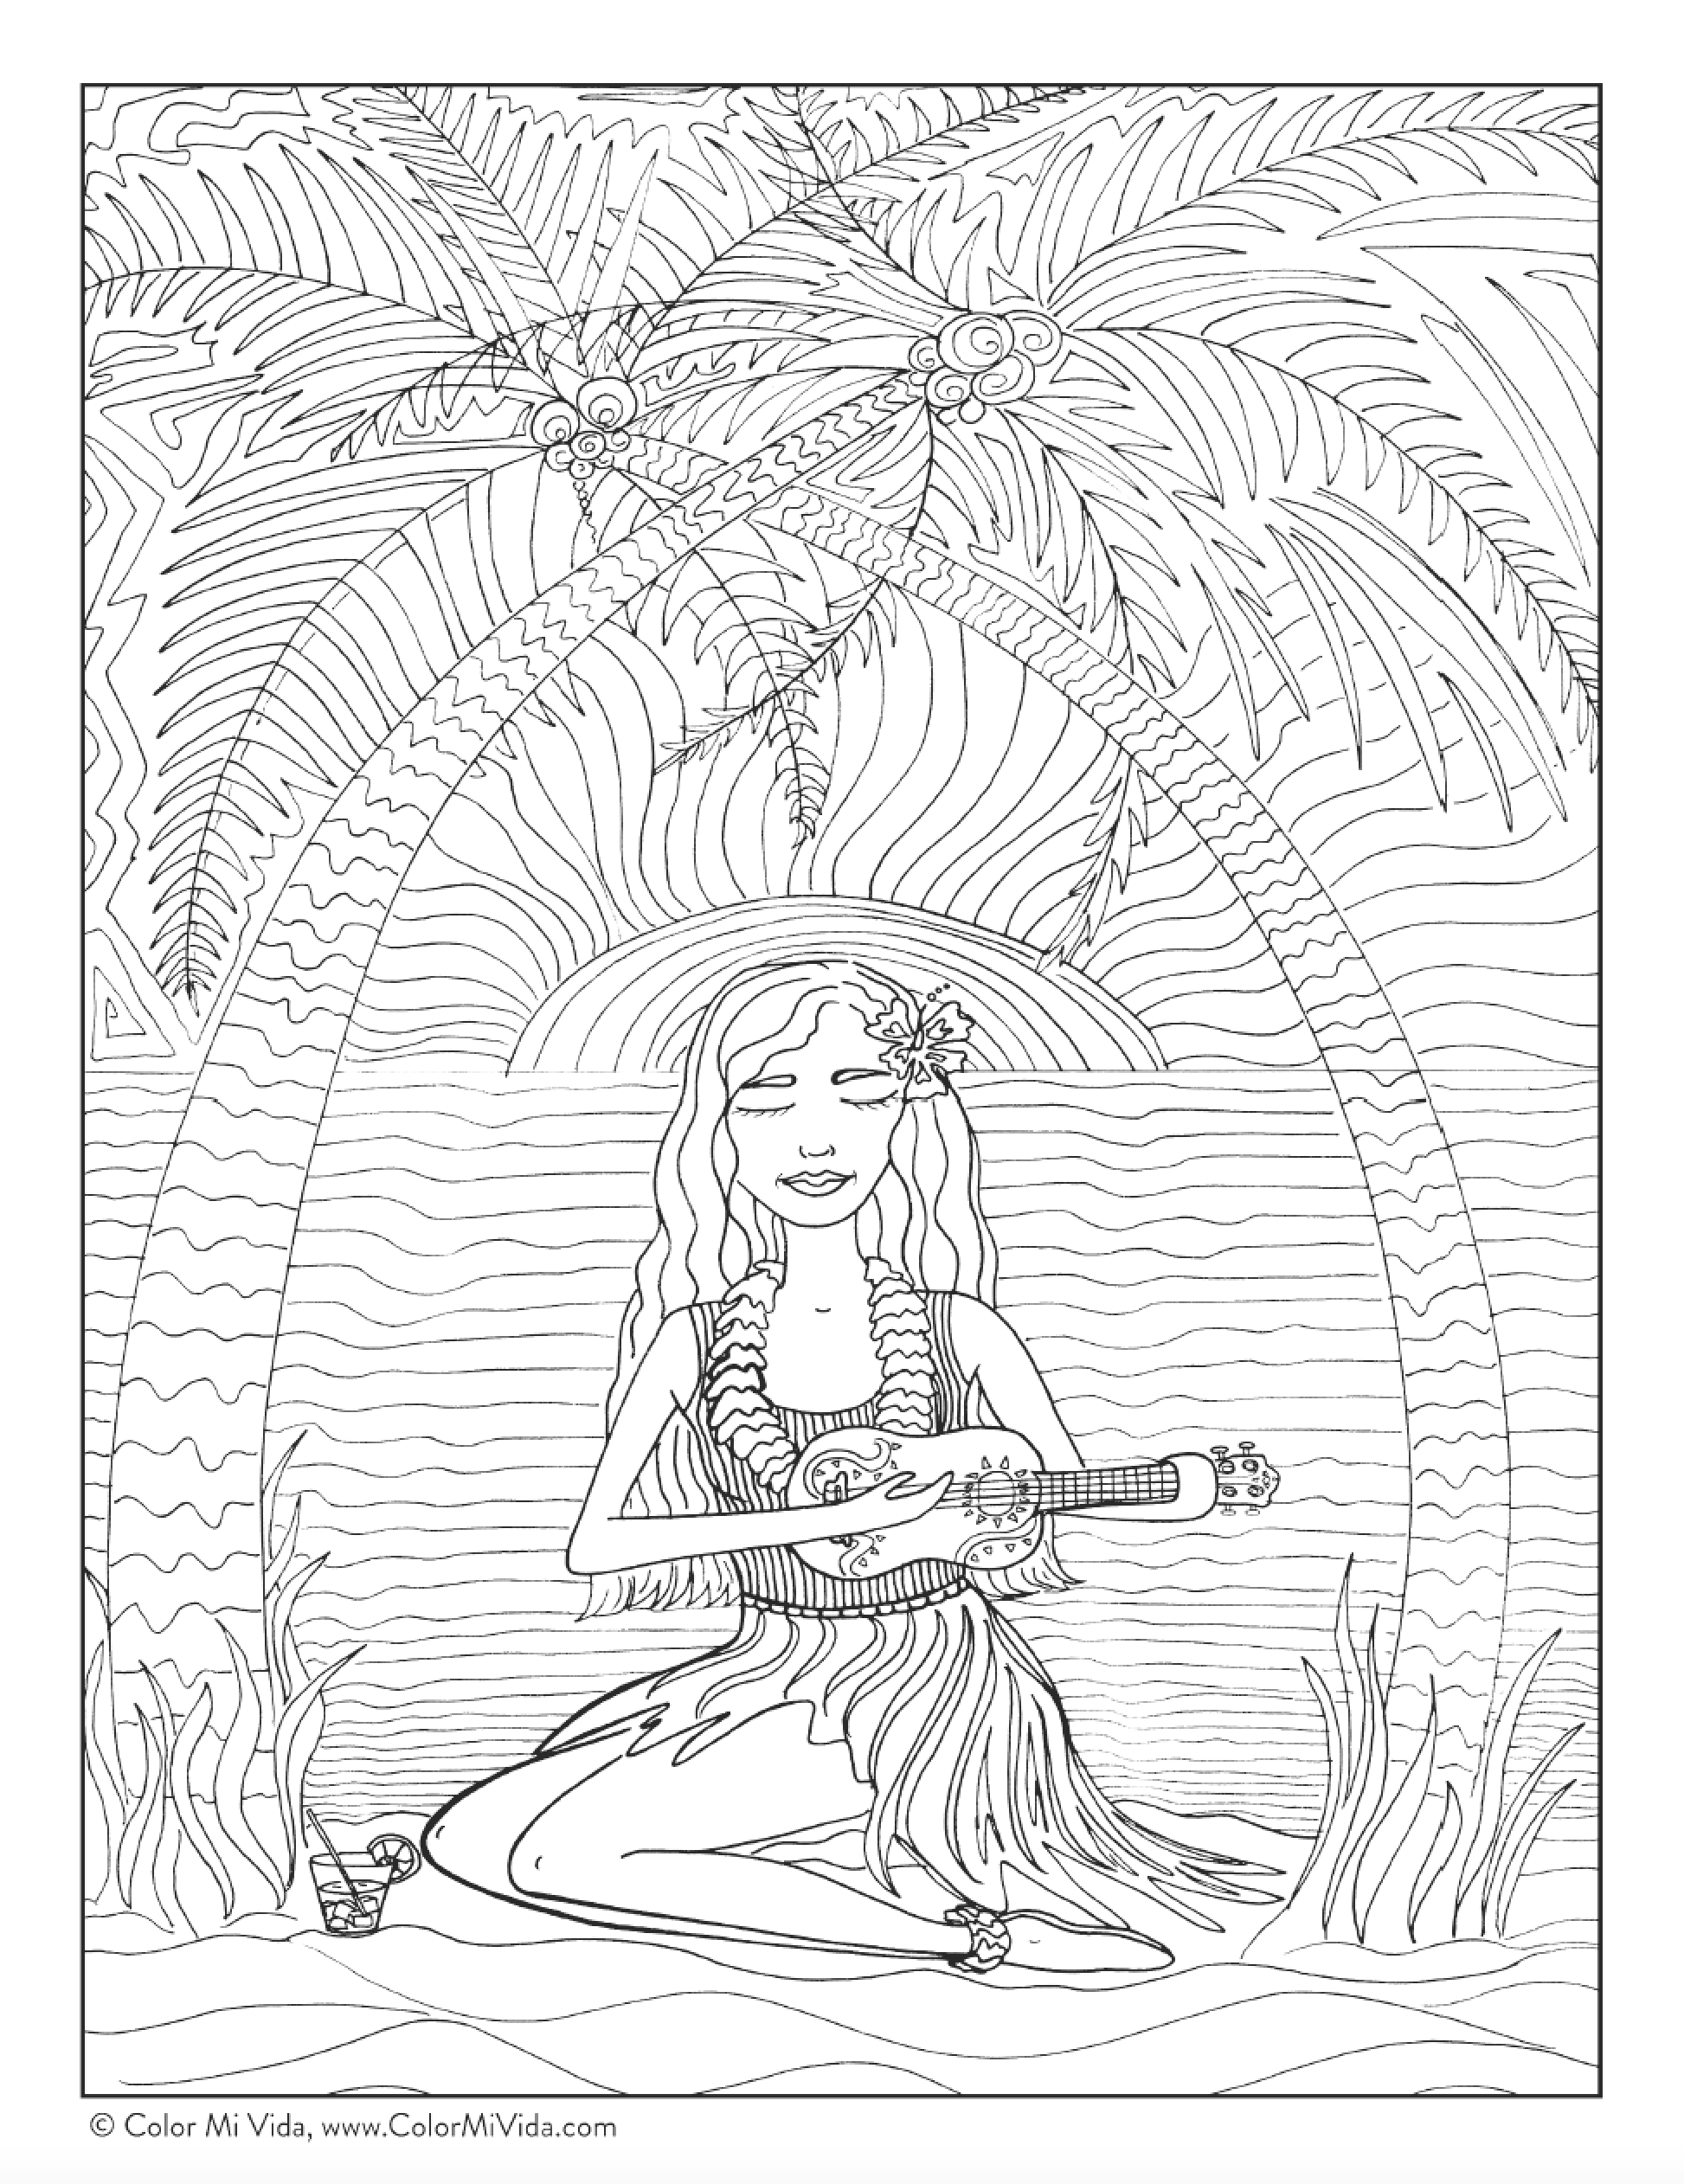 FREE Coloring Pages Adult Coloring